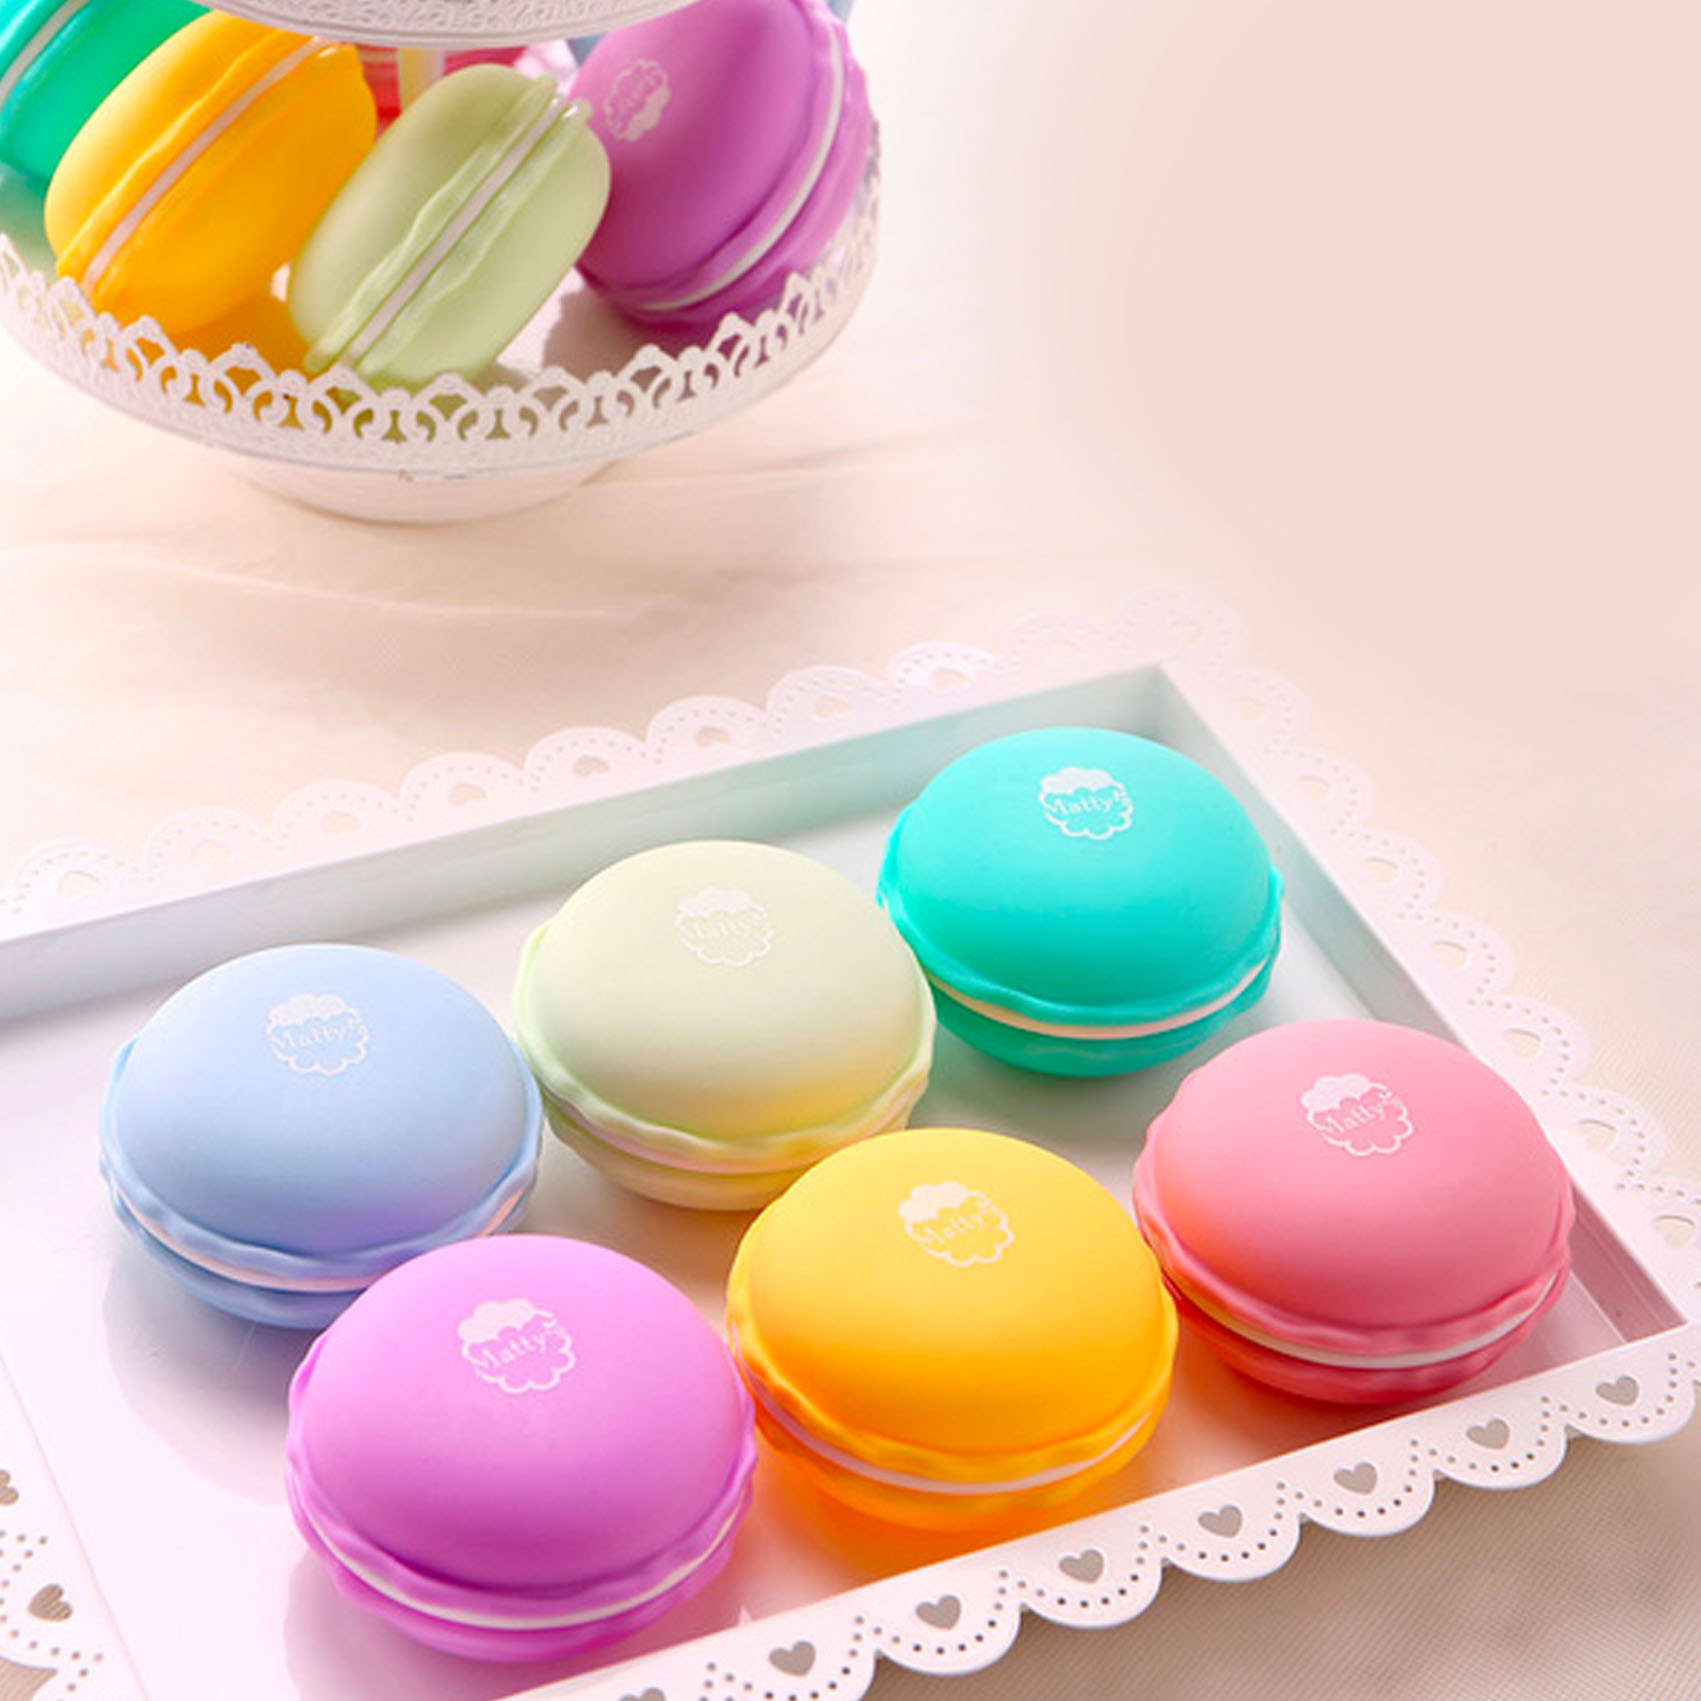 Macaron Storage Containers (Set of 6)